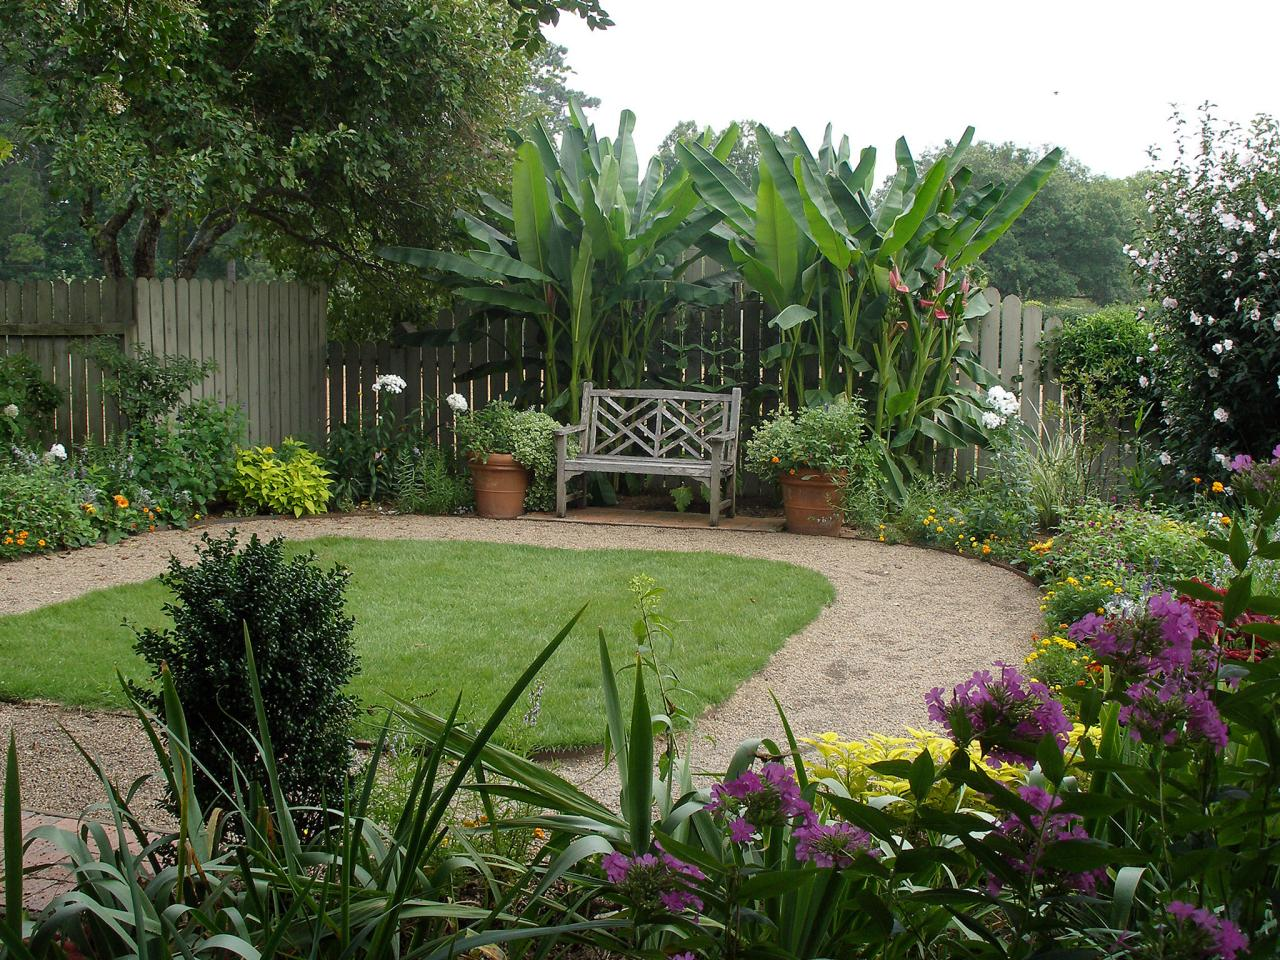 Basic landscaping tips for an empty yard hgtv for Simple garden design